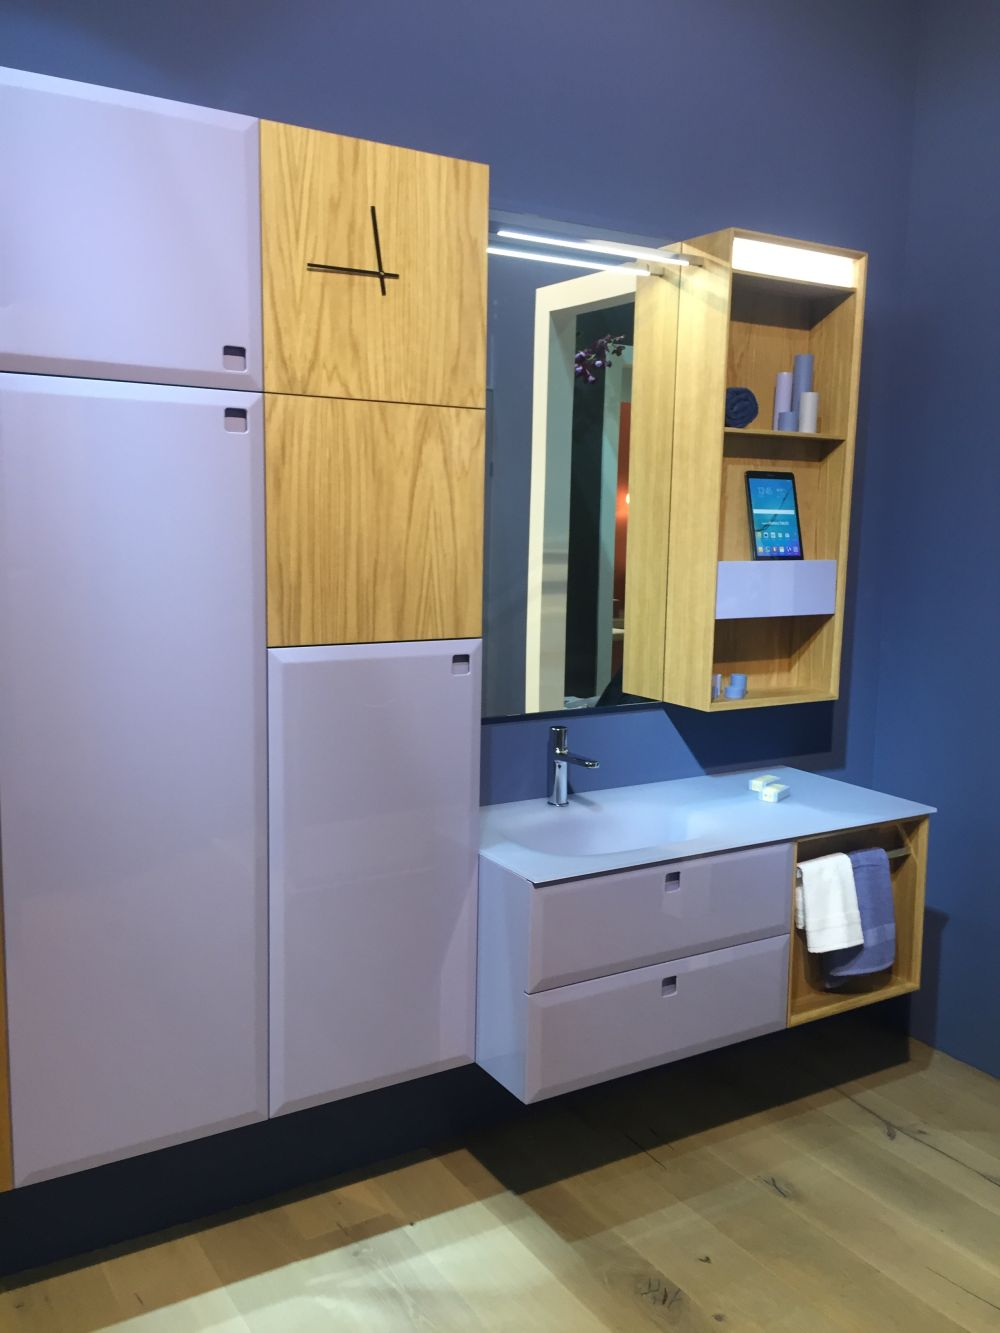 Large Bathroom Cabinets Provide Enough Room Inside For Laundry Hampers Linens And All Sorts Of